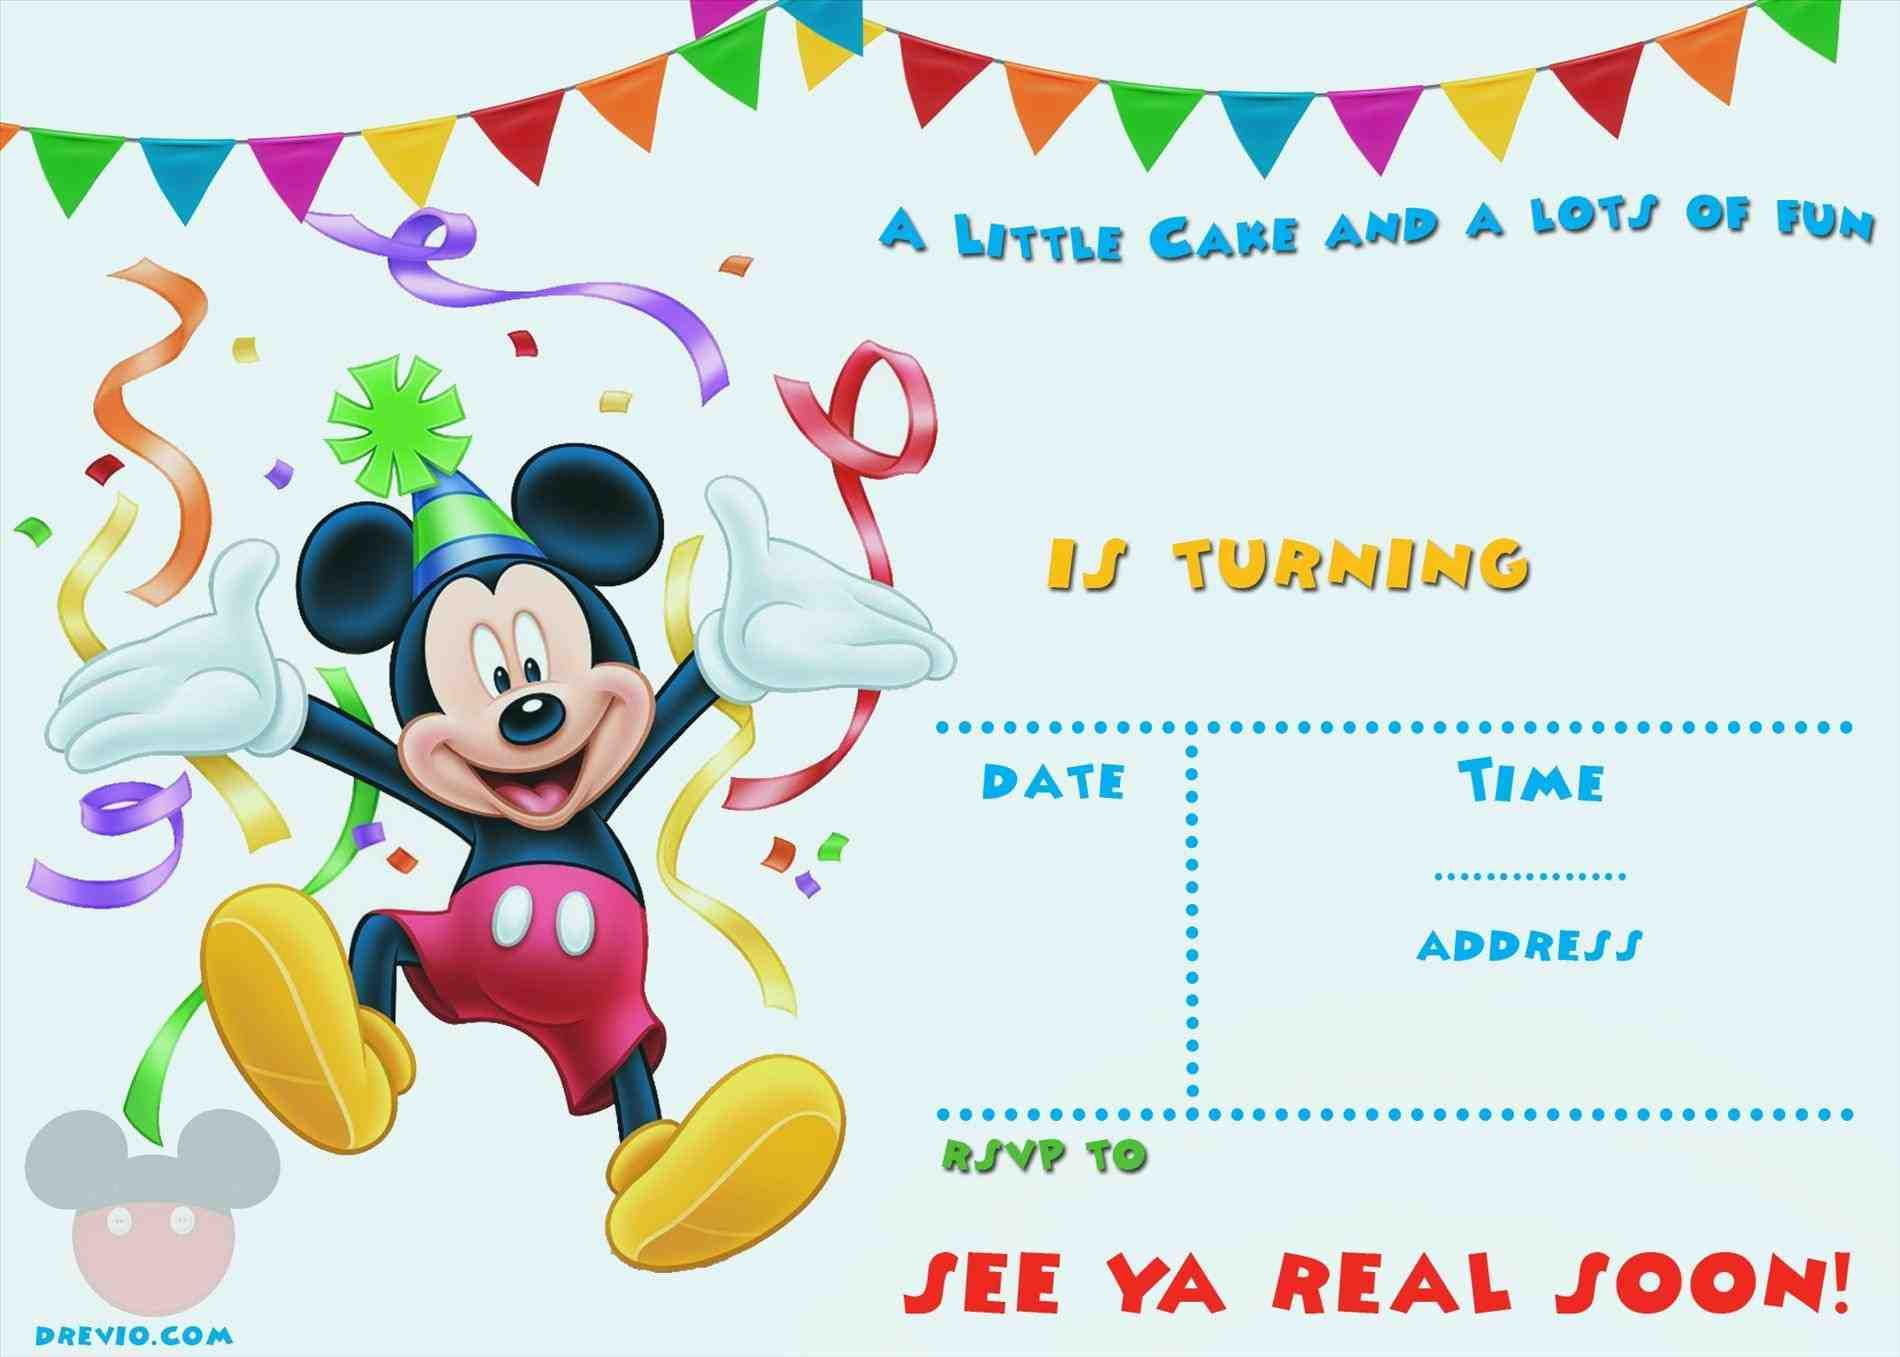 70th Birthday Invitation Ideas And Get Inspired To Create Your Own Design With This 3 30th Thirty